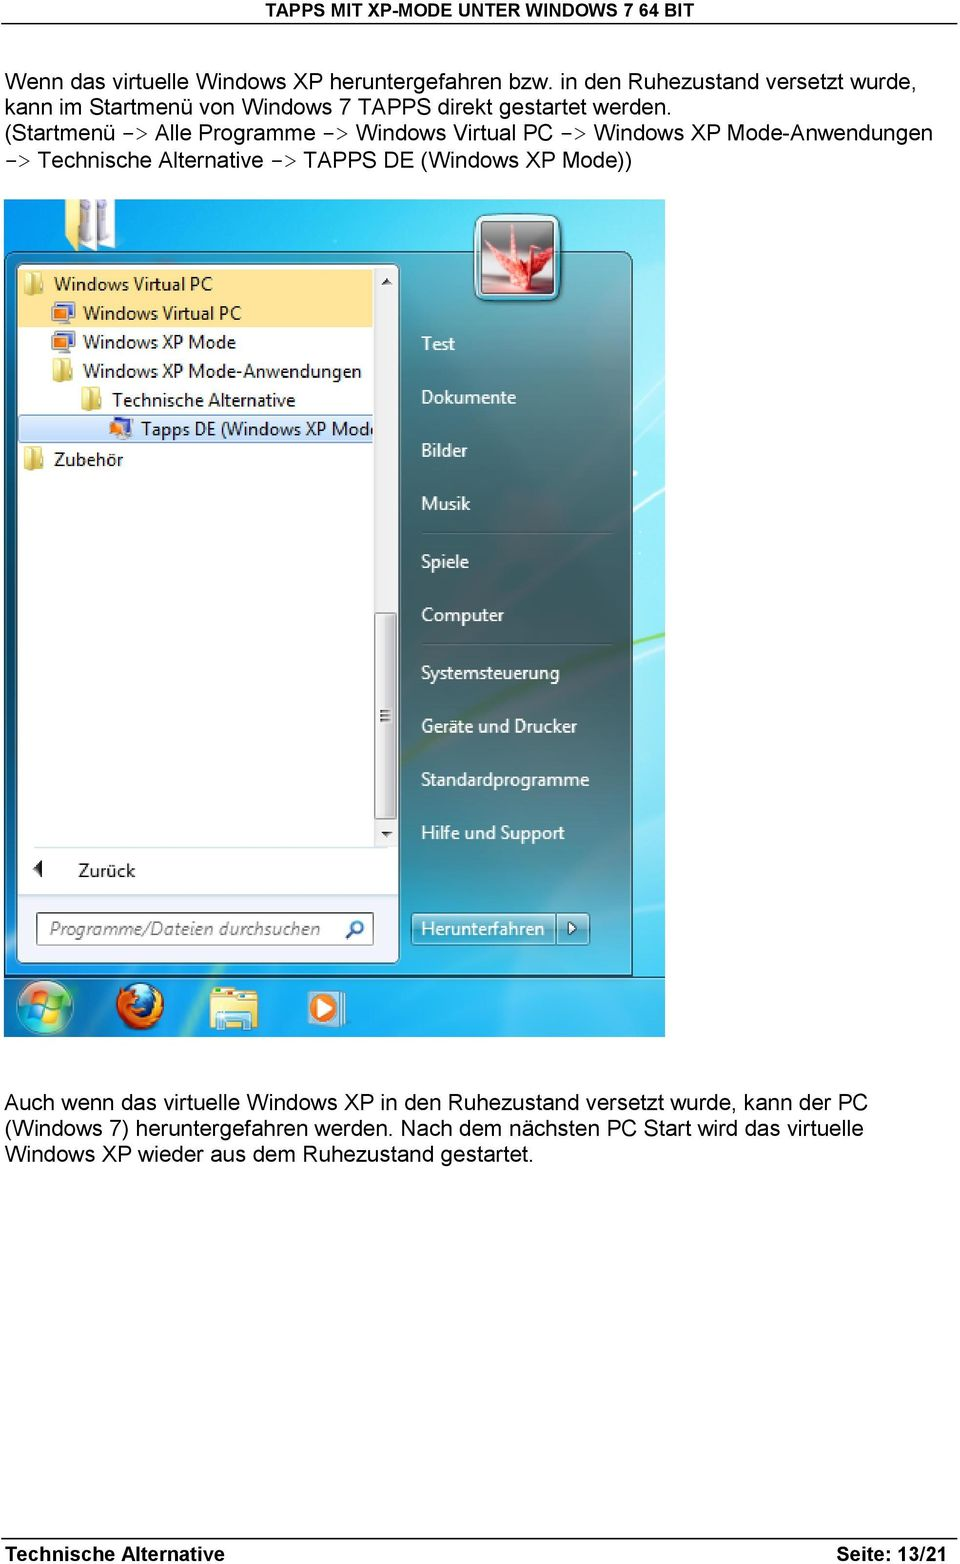 (Startmenü -> Alle Programme -> Windows Virtual PC -> Windows XP Mode-Anwendungen -> Technische Alternative -> TAPPS DE (Windows XP